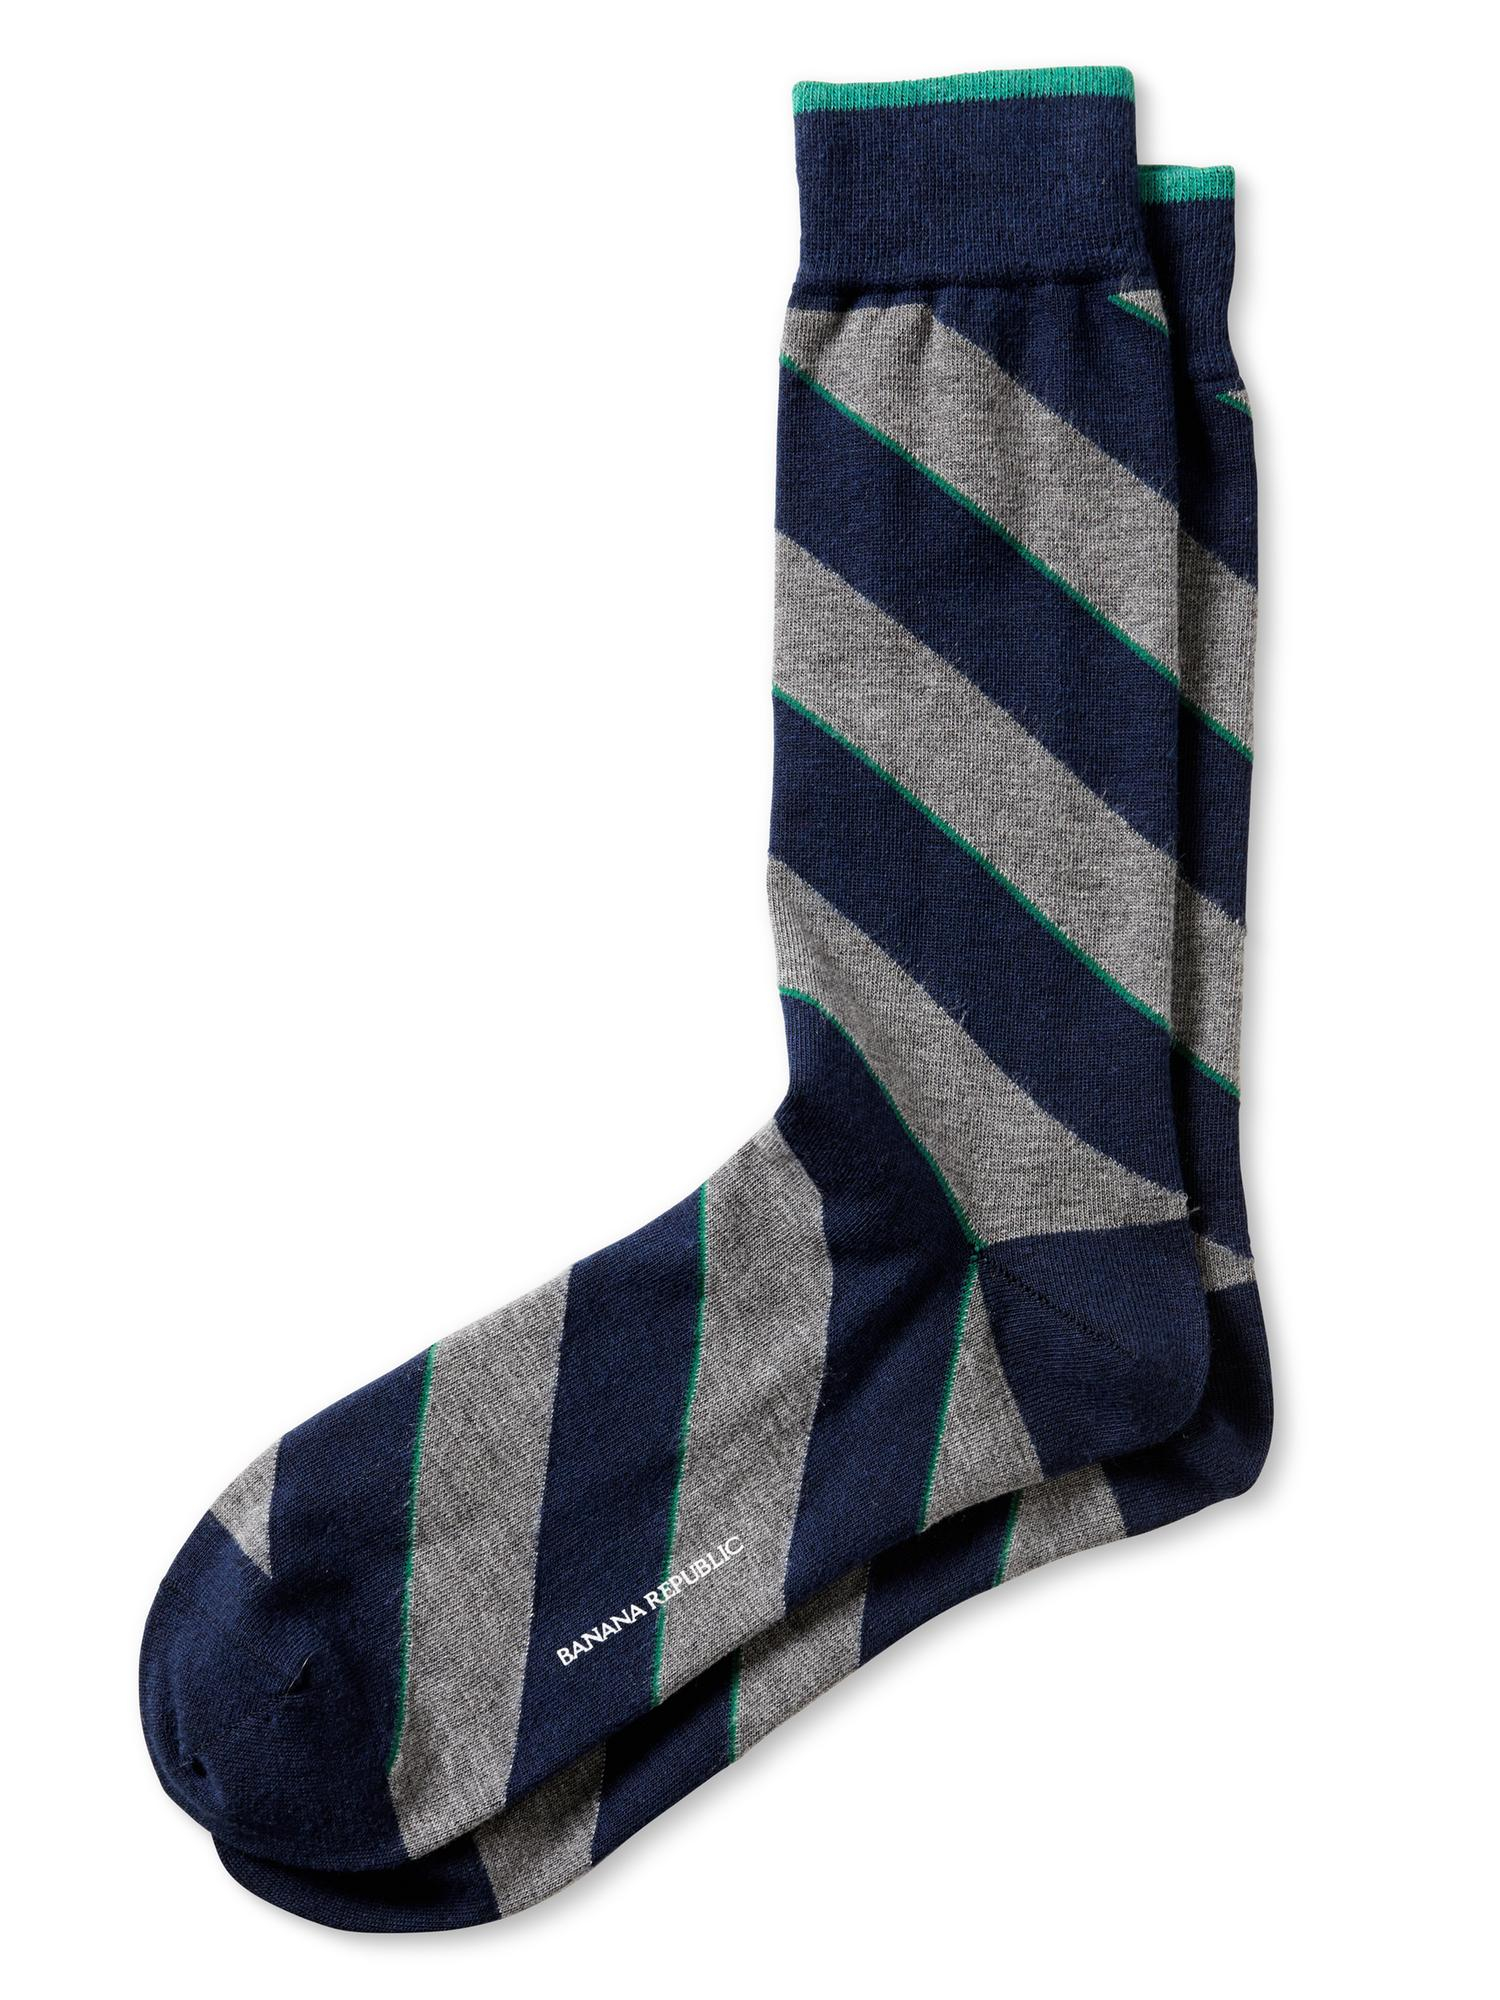 banana republic luxe tie sock navy in blue for navy